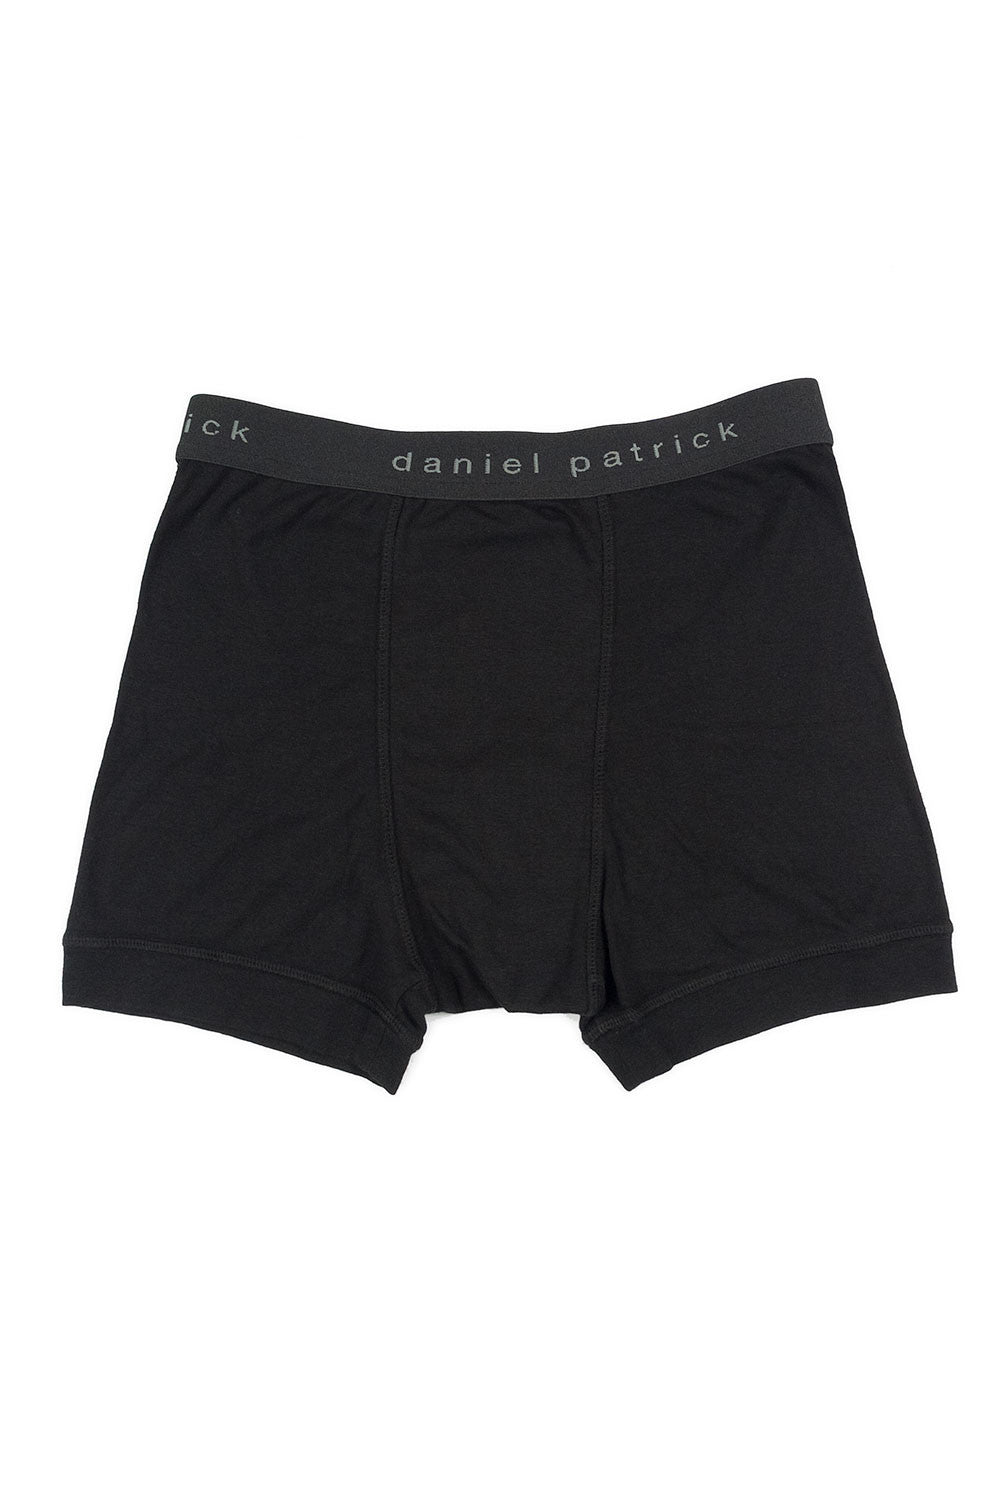 Black Logo Boxer Briefs Offer KTcD8dVY